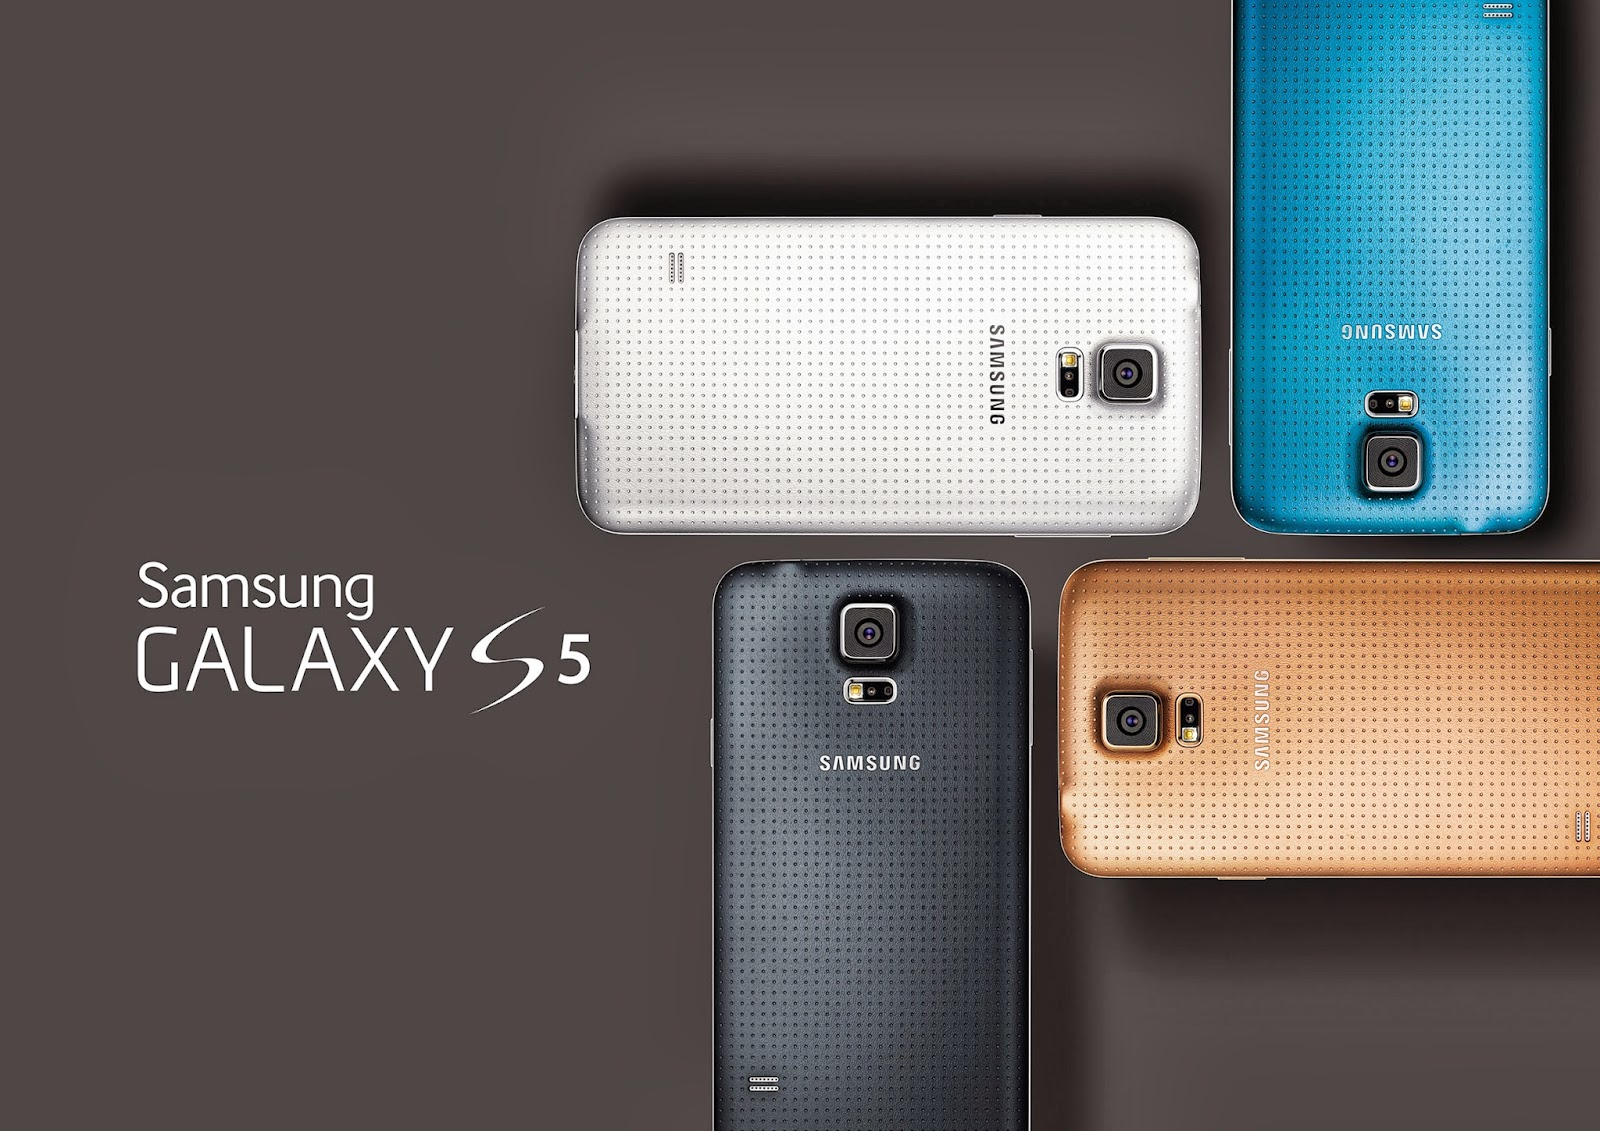 different colors of Samsung Galaxy S5